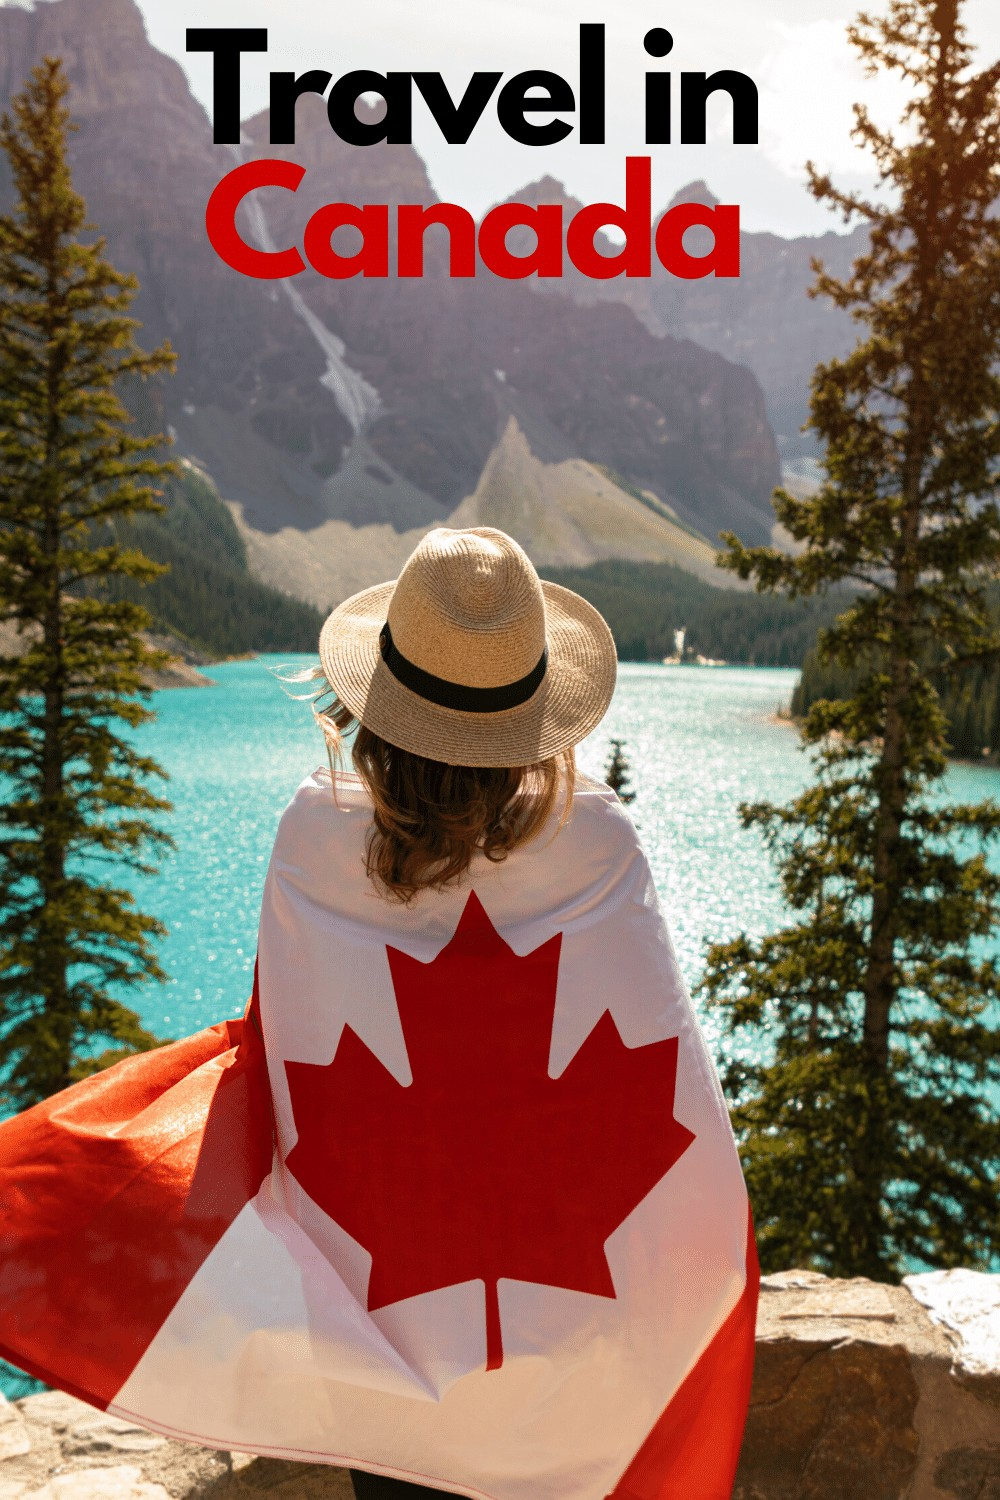 Travel in Canada